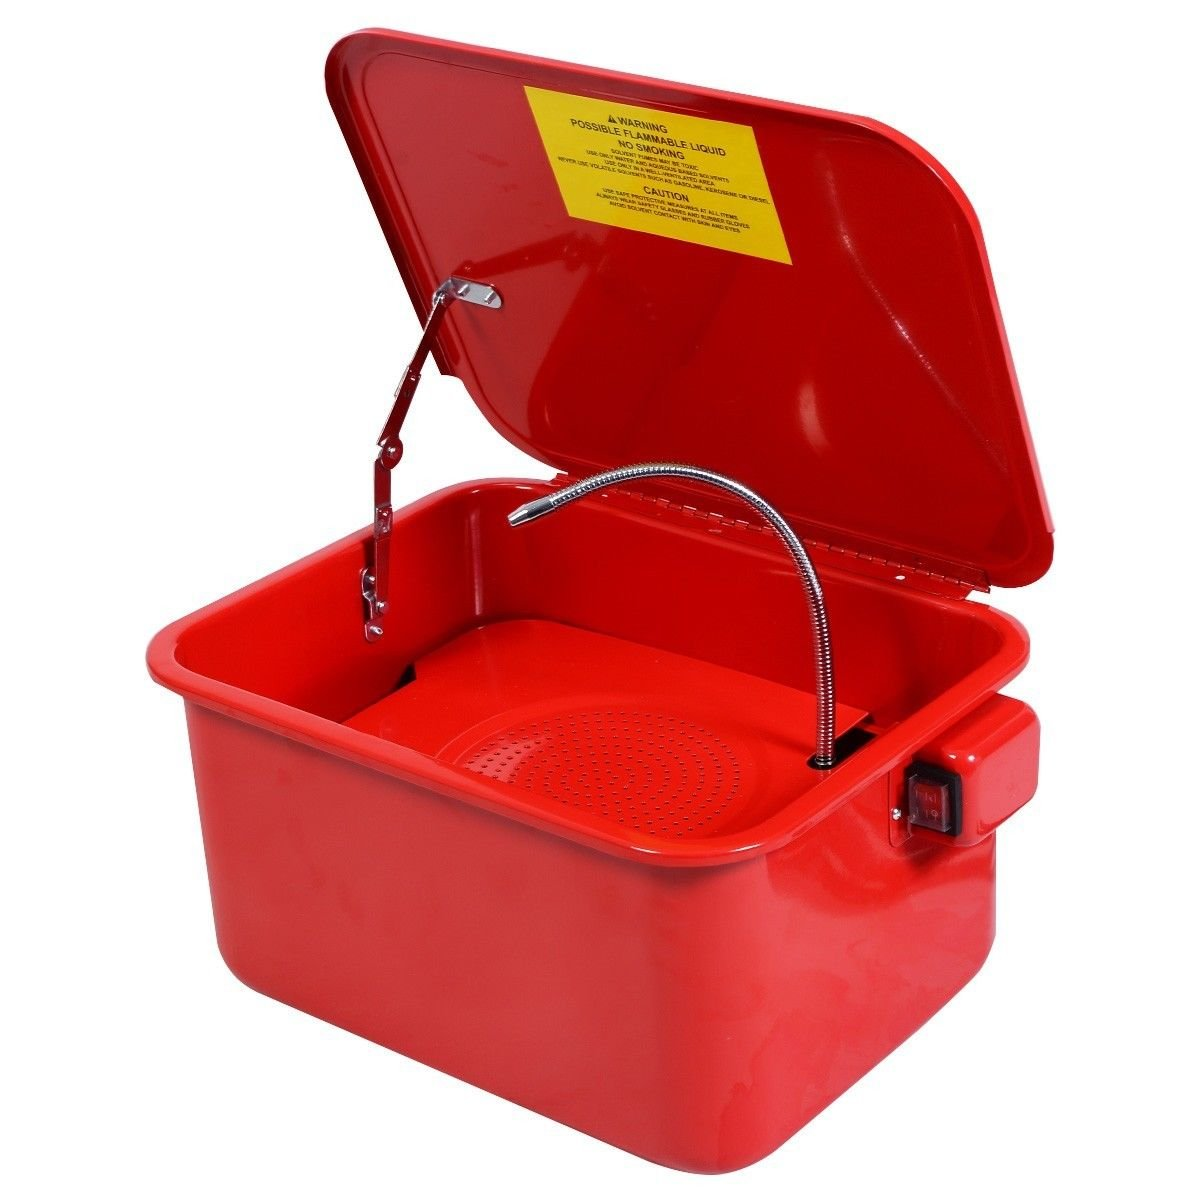 Globe House Products GHP 5-Gallon Tank Capacity 5.28GPM Steel Lid Fusible Link Portable Parts Washer by Globe House Products (Image #1)